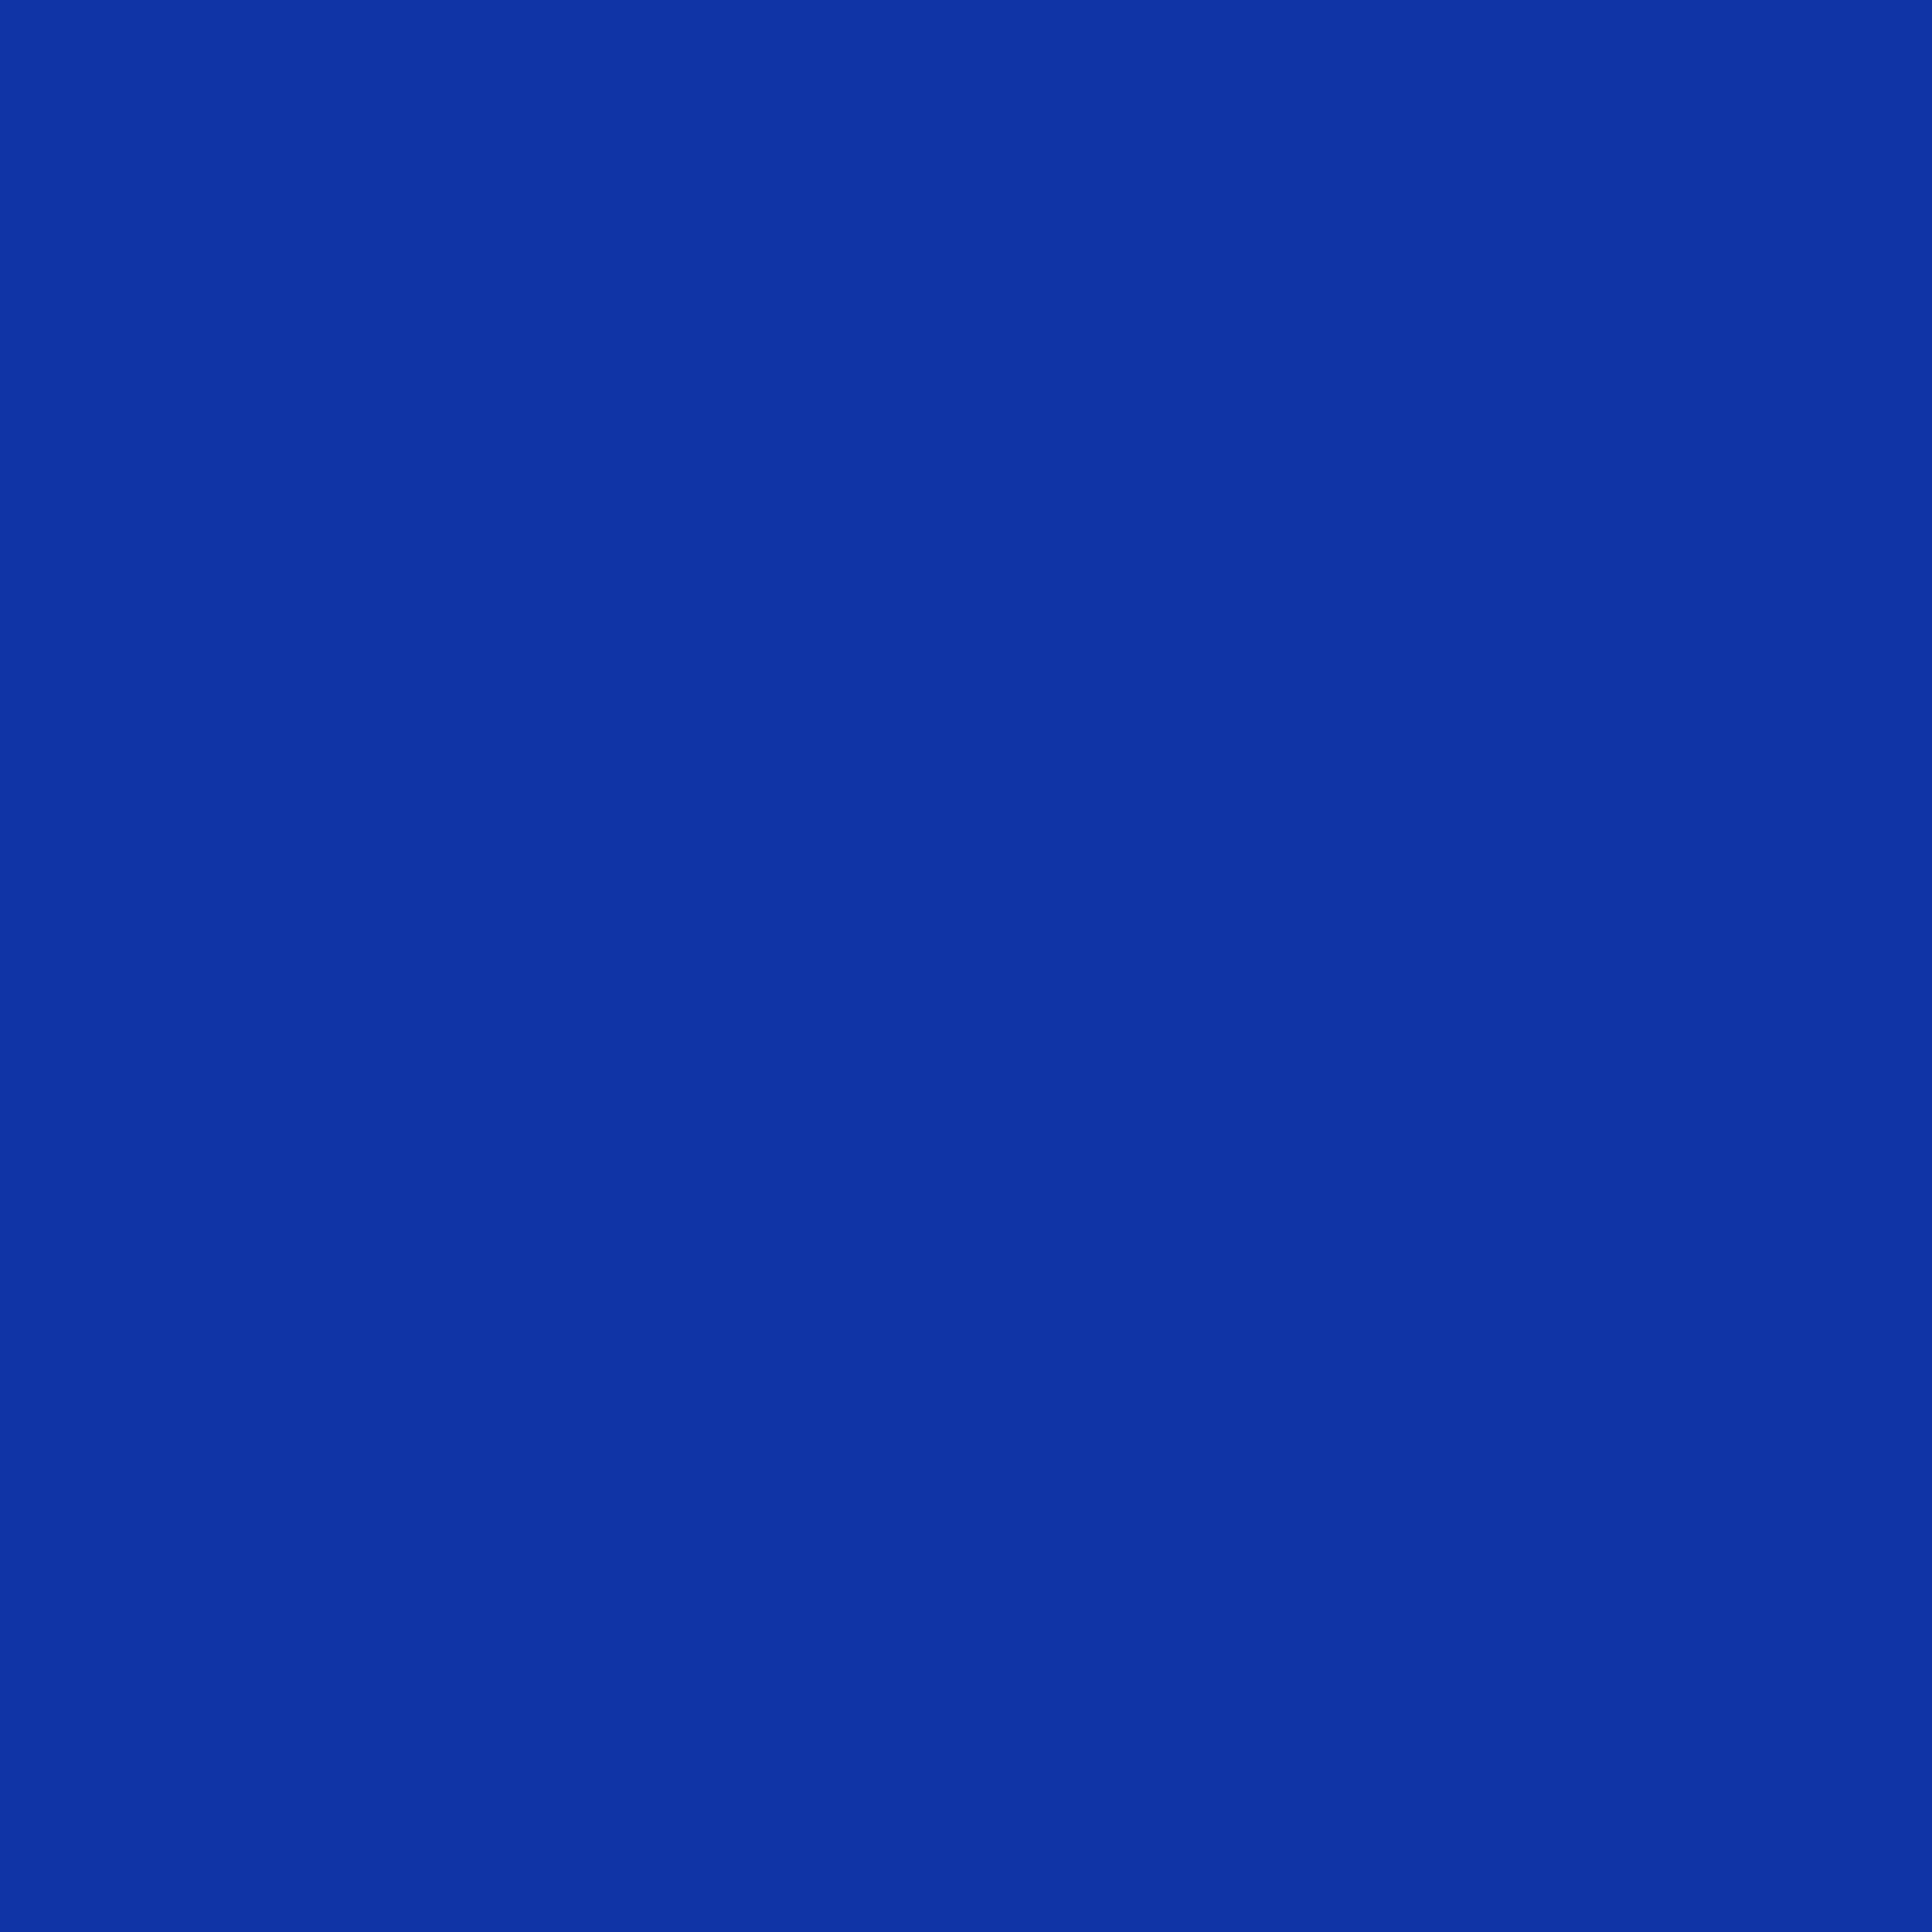 2732x2732 Egyptian Blue Solid Color Background